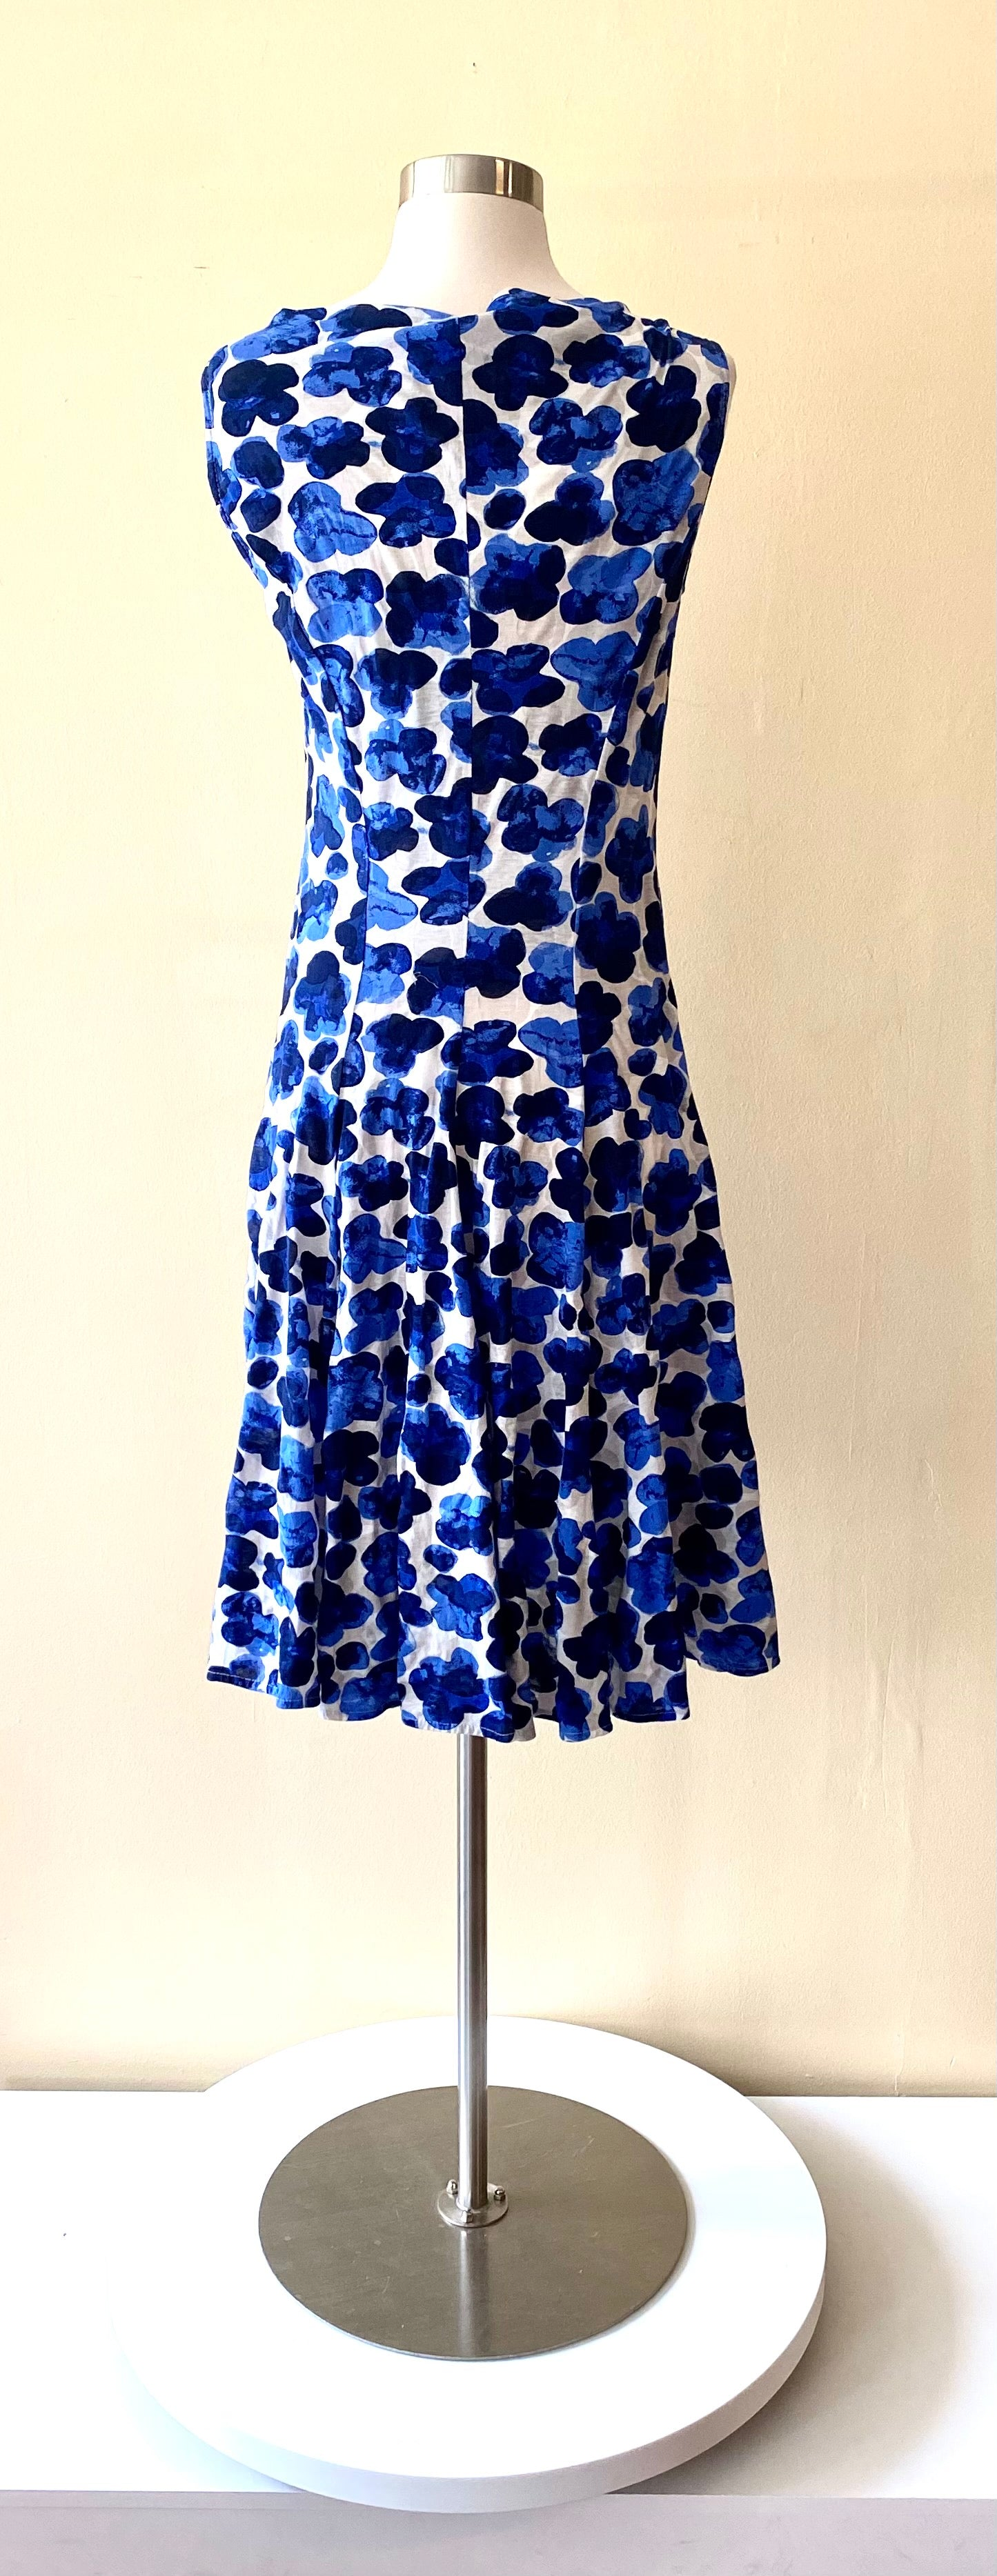 Anett Roestel Berlin Blue Flower Jersey Dress